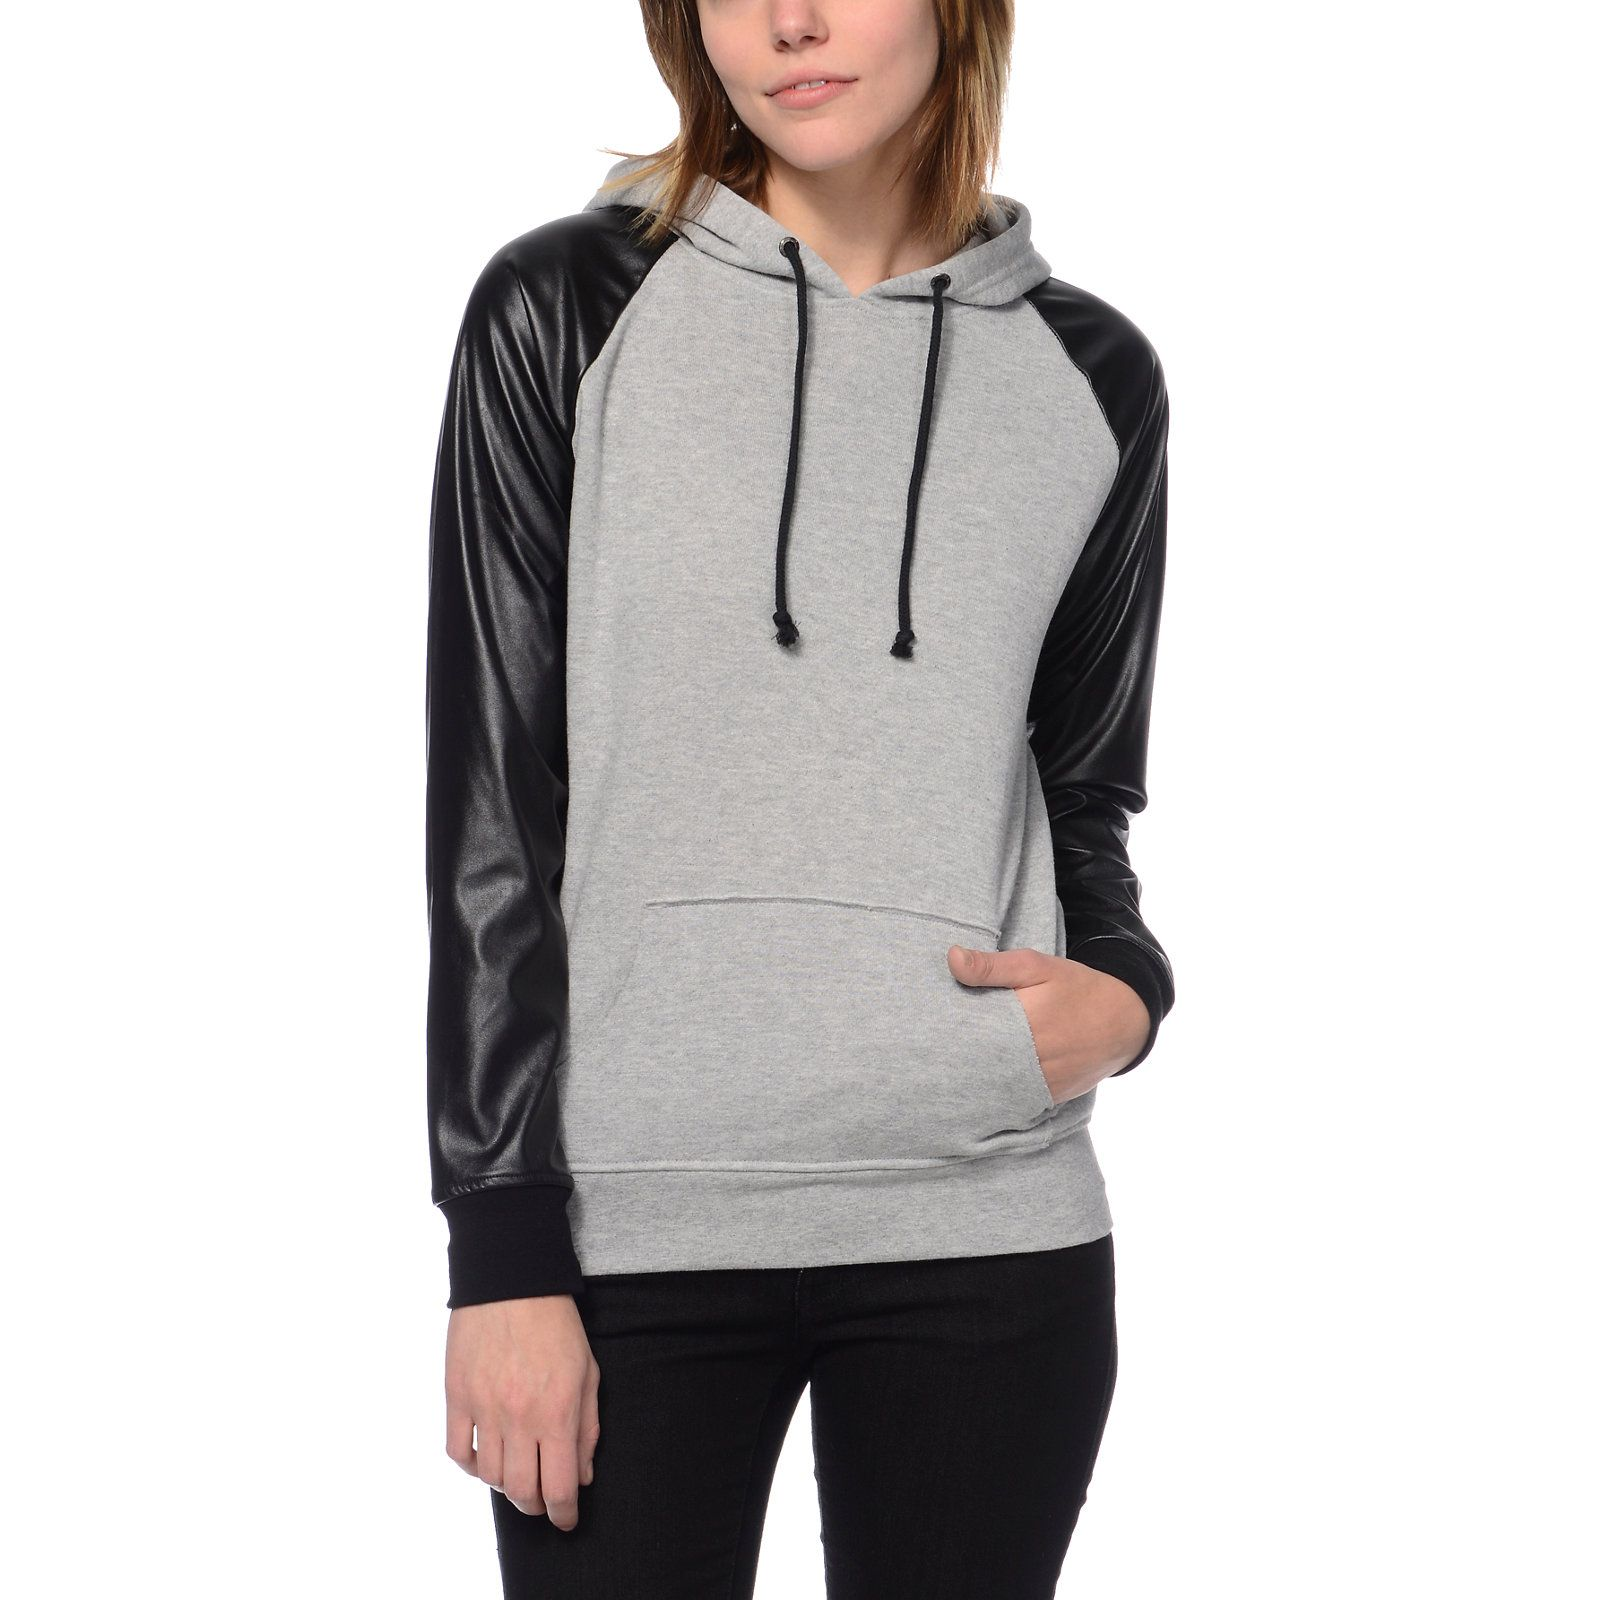 Empyre Unity Grey & Black Pullover Hoodie | Unity, Pullover and Gray